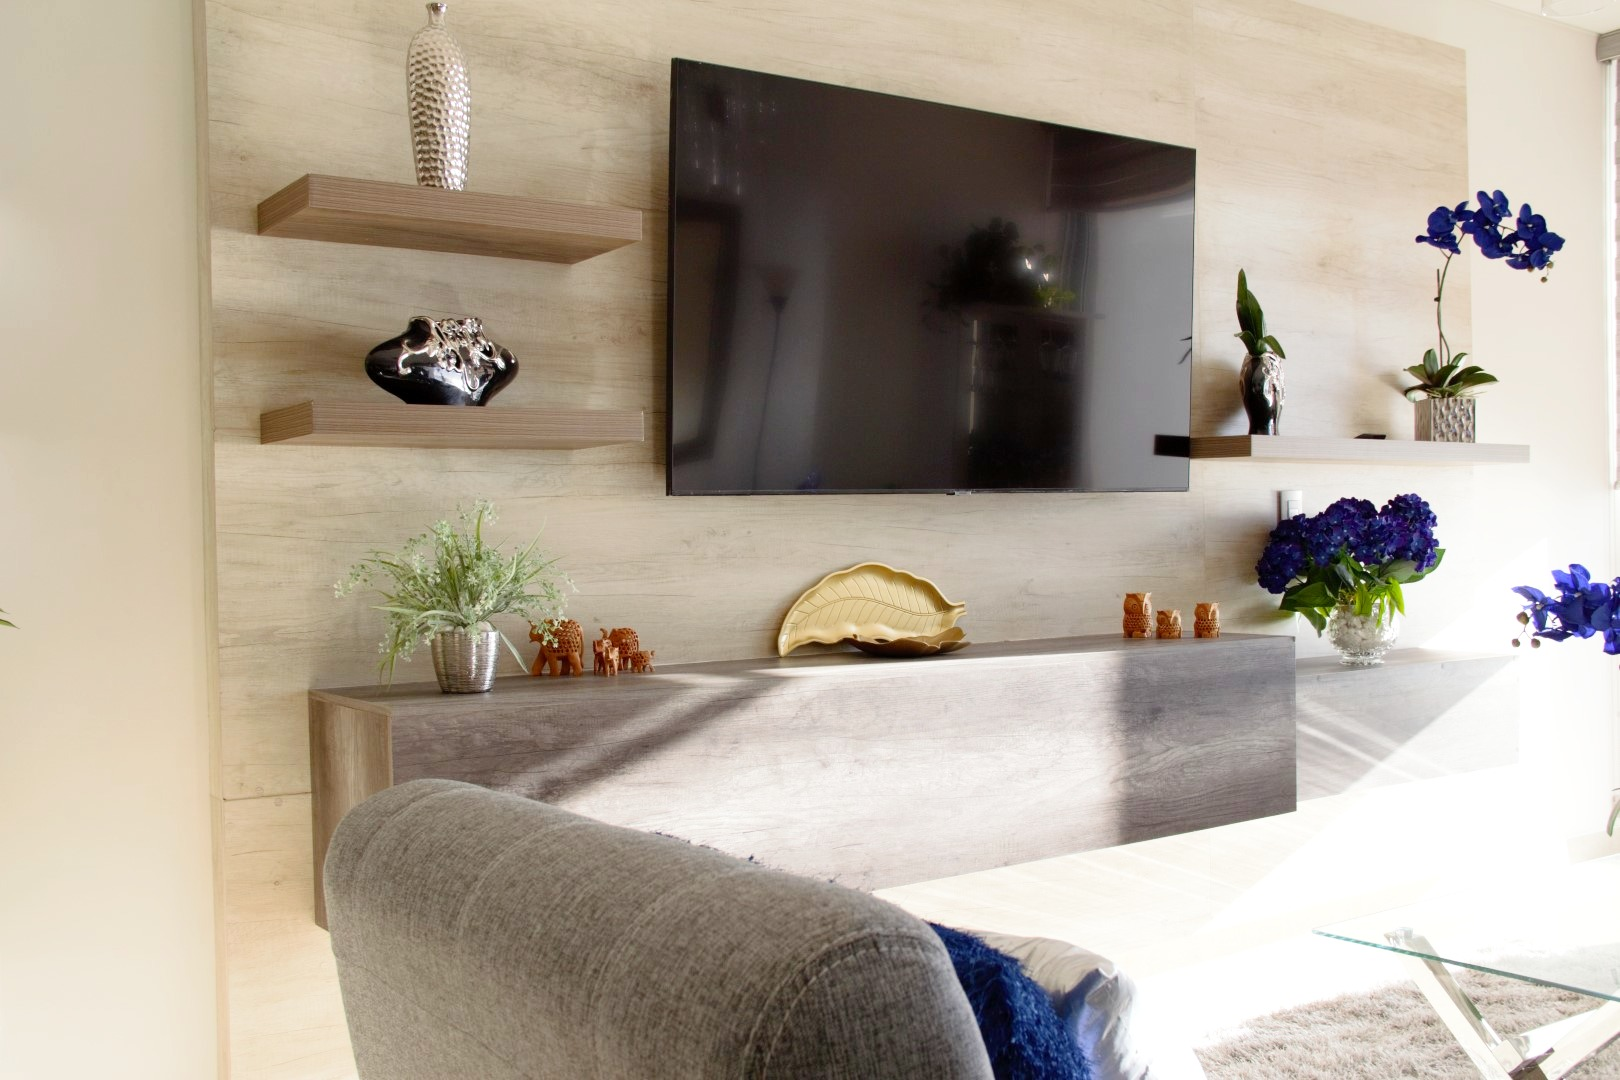 TV and decor in living room.